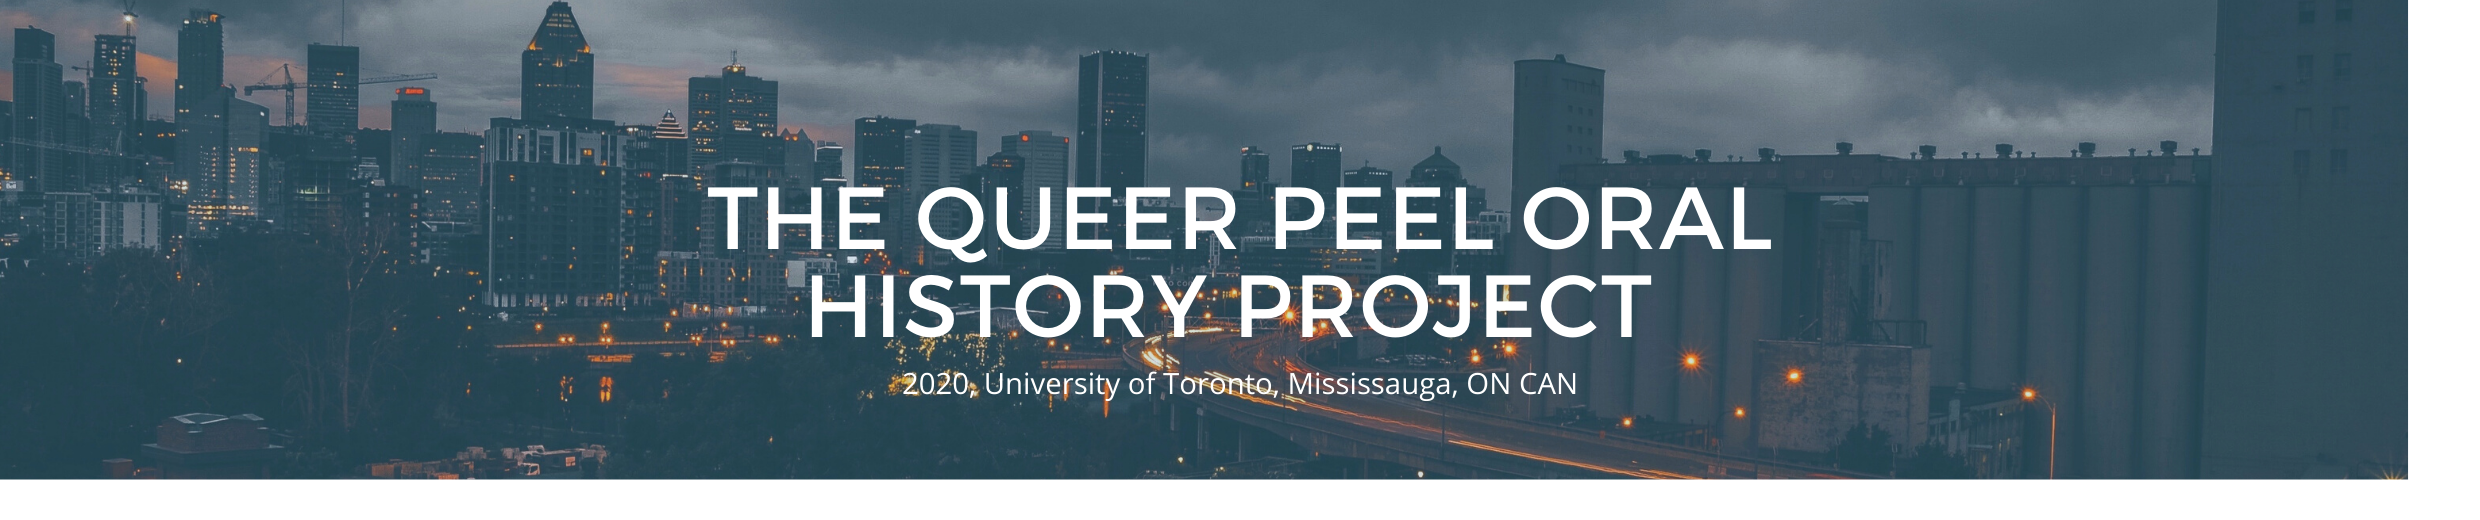 Queer Peel Oral History Project